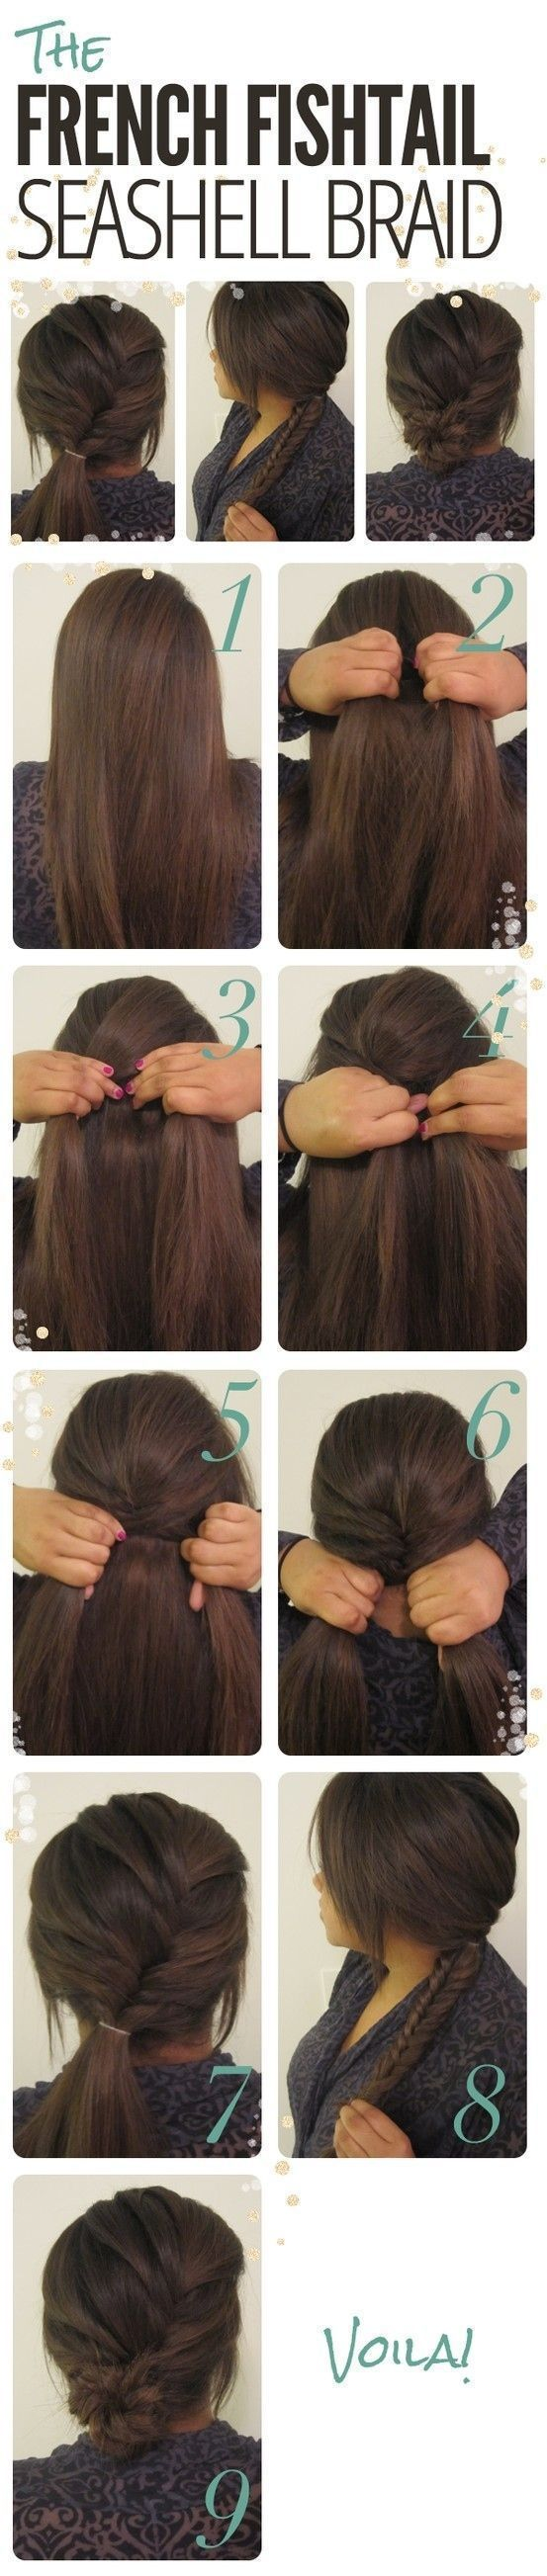 Google Image Result for http://xaxor.com/wp-content/uploads/2012/07/Cool-DIY-hairstyles-for-girls16.jpg